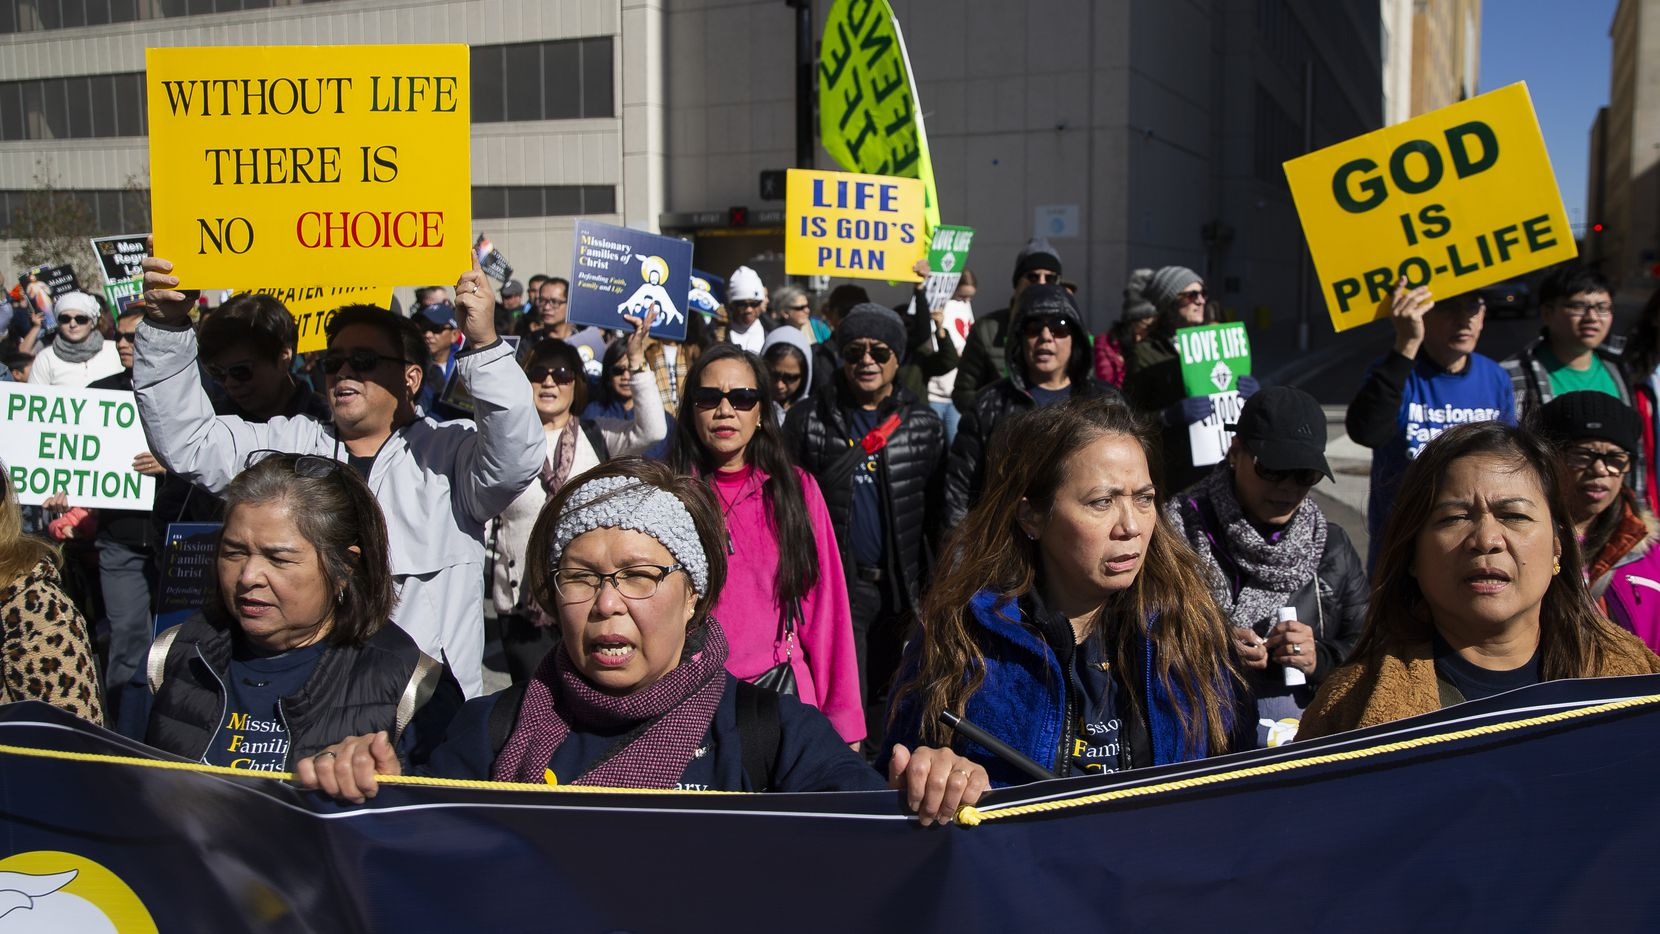 Demonstrators march from the Cathedral Santuario de la Virgen de Guadalupe to the Earle Cabell Federal Courthouse during the North Texas March for Life on Saturday, Jan. 18, 2020, in downtown Dallas. The Roe vs. Wade lawsuit was originally filed in Dallas.